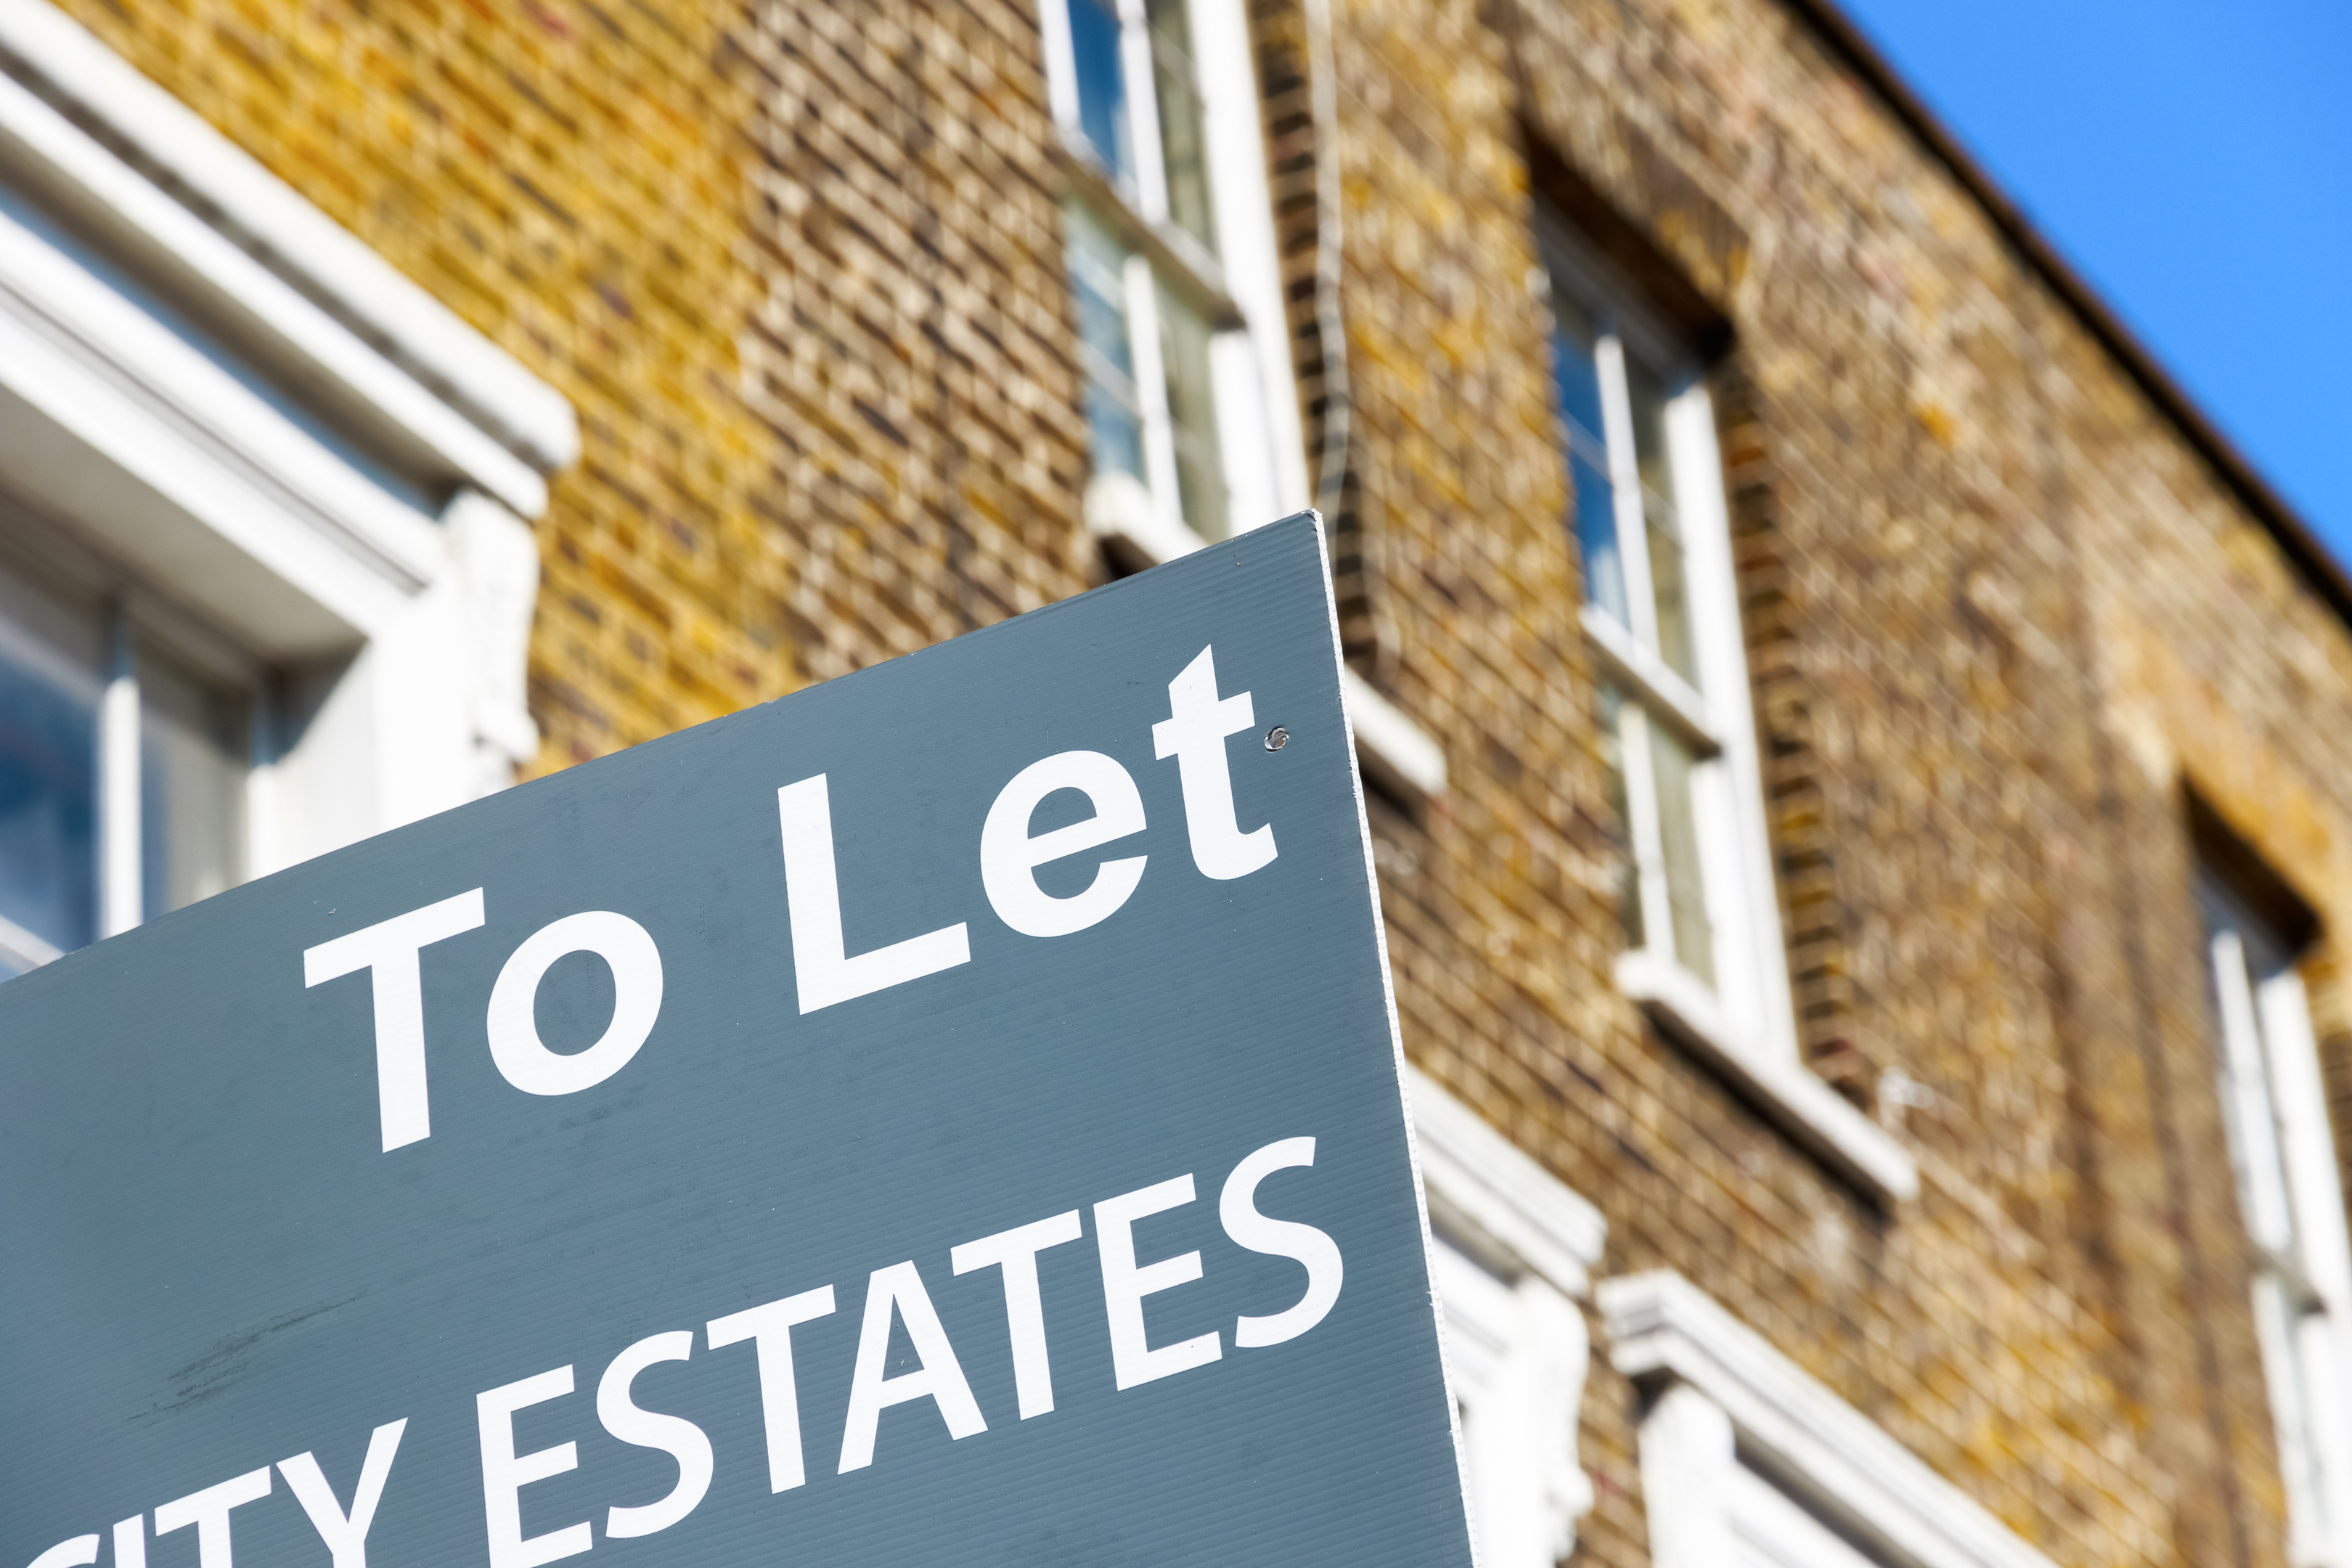 The scheme could potentially support the creation of 2,500 private rented homes and attract £500 million in investment (iStock)